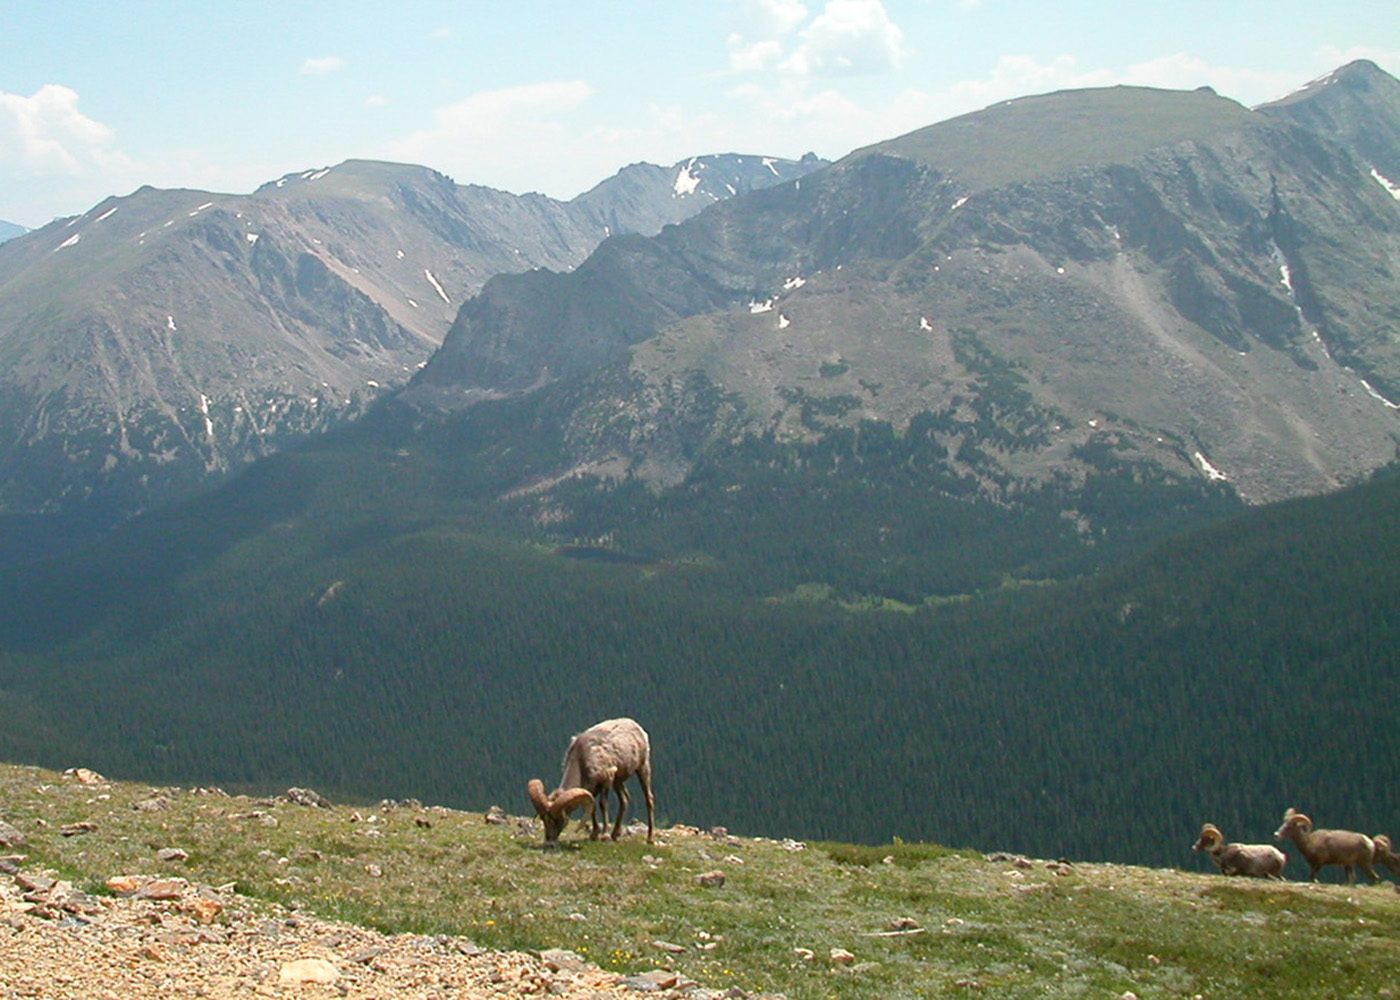 Backpack Rocky Mountain National Park | Sierra Club Outings